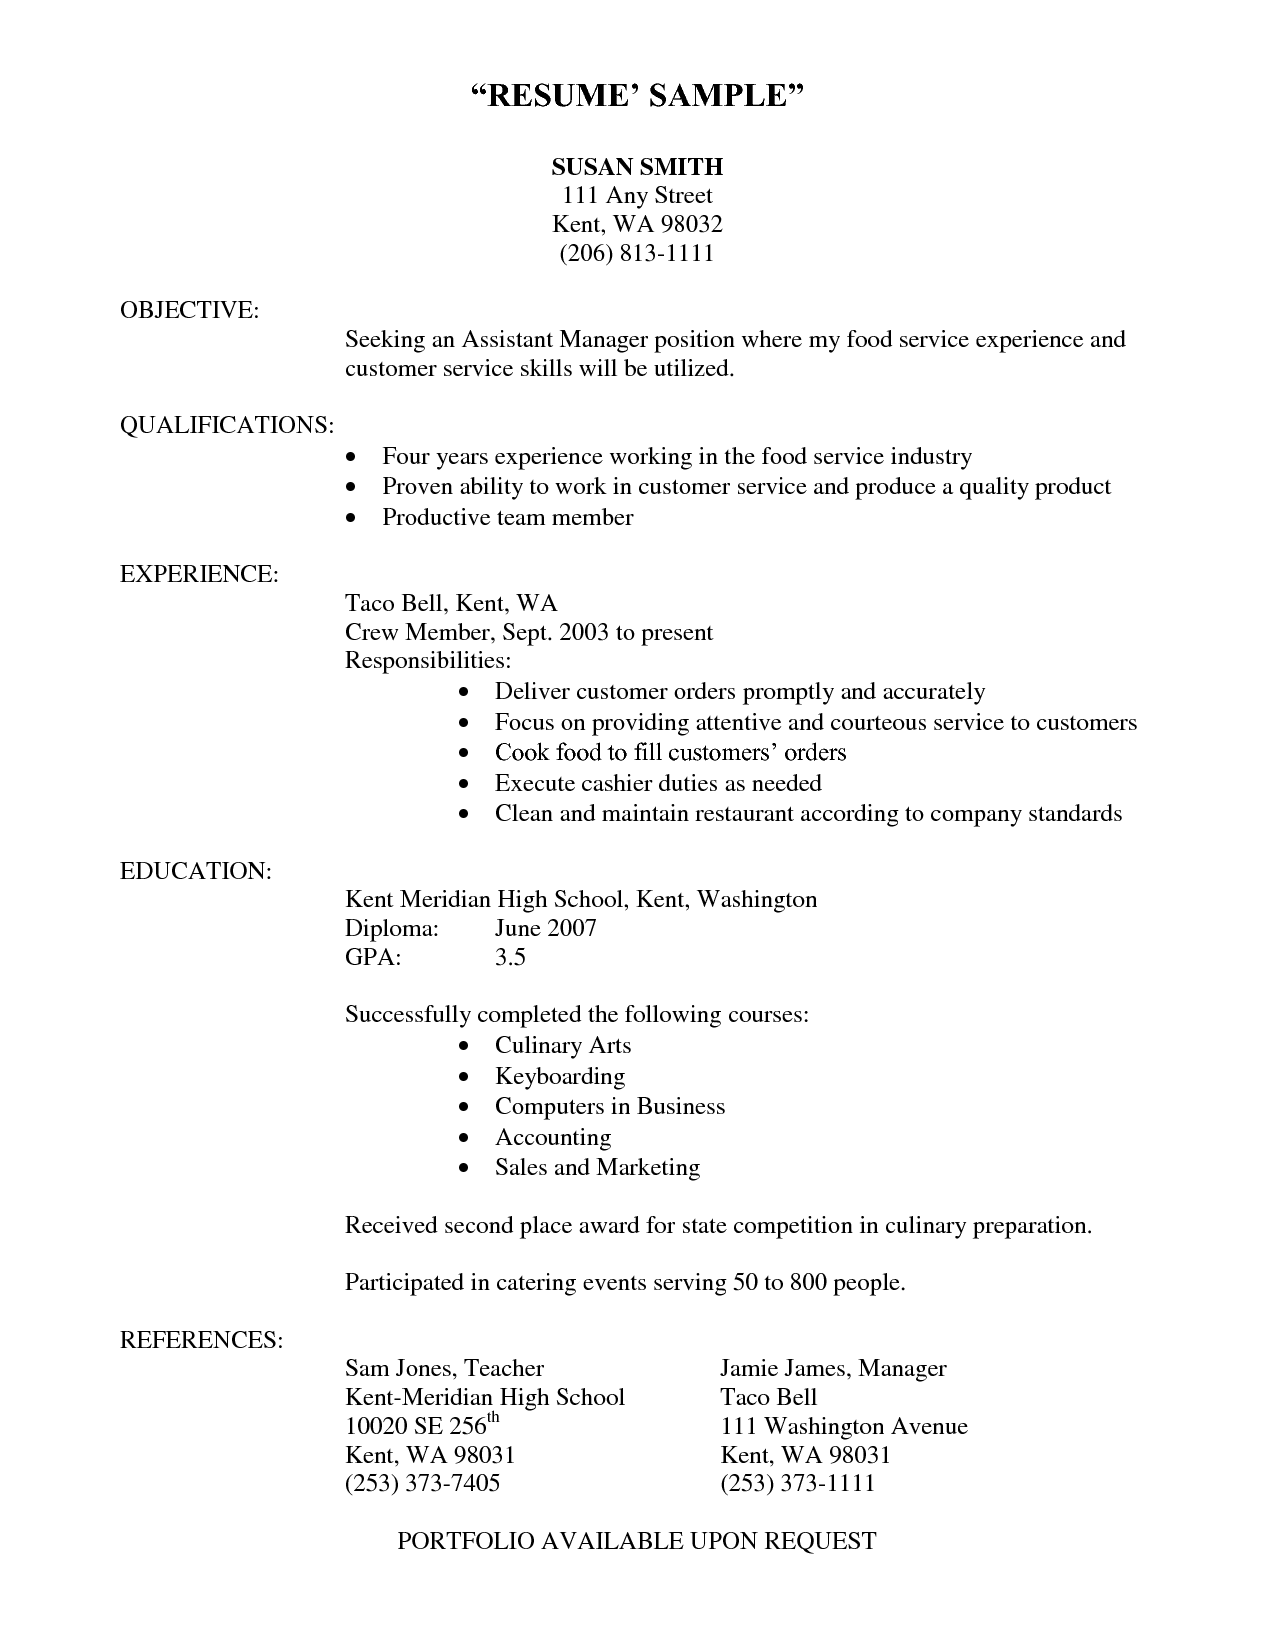 example qualifications resume homeschool teacher sample skill cover letter warehouse skills - How To Write Qualifications On A Resume